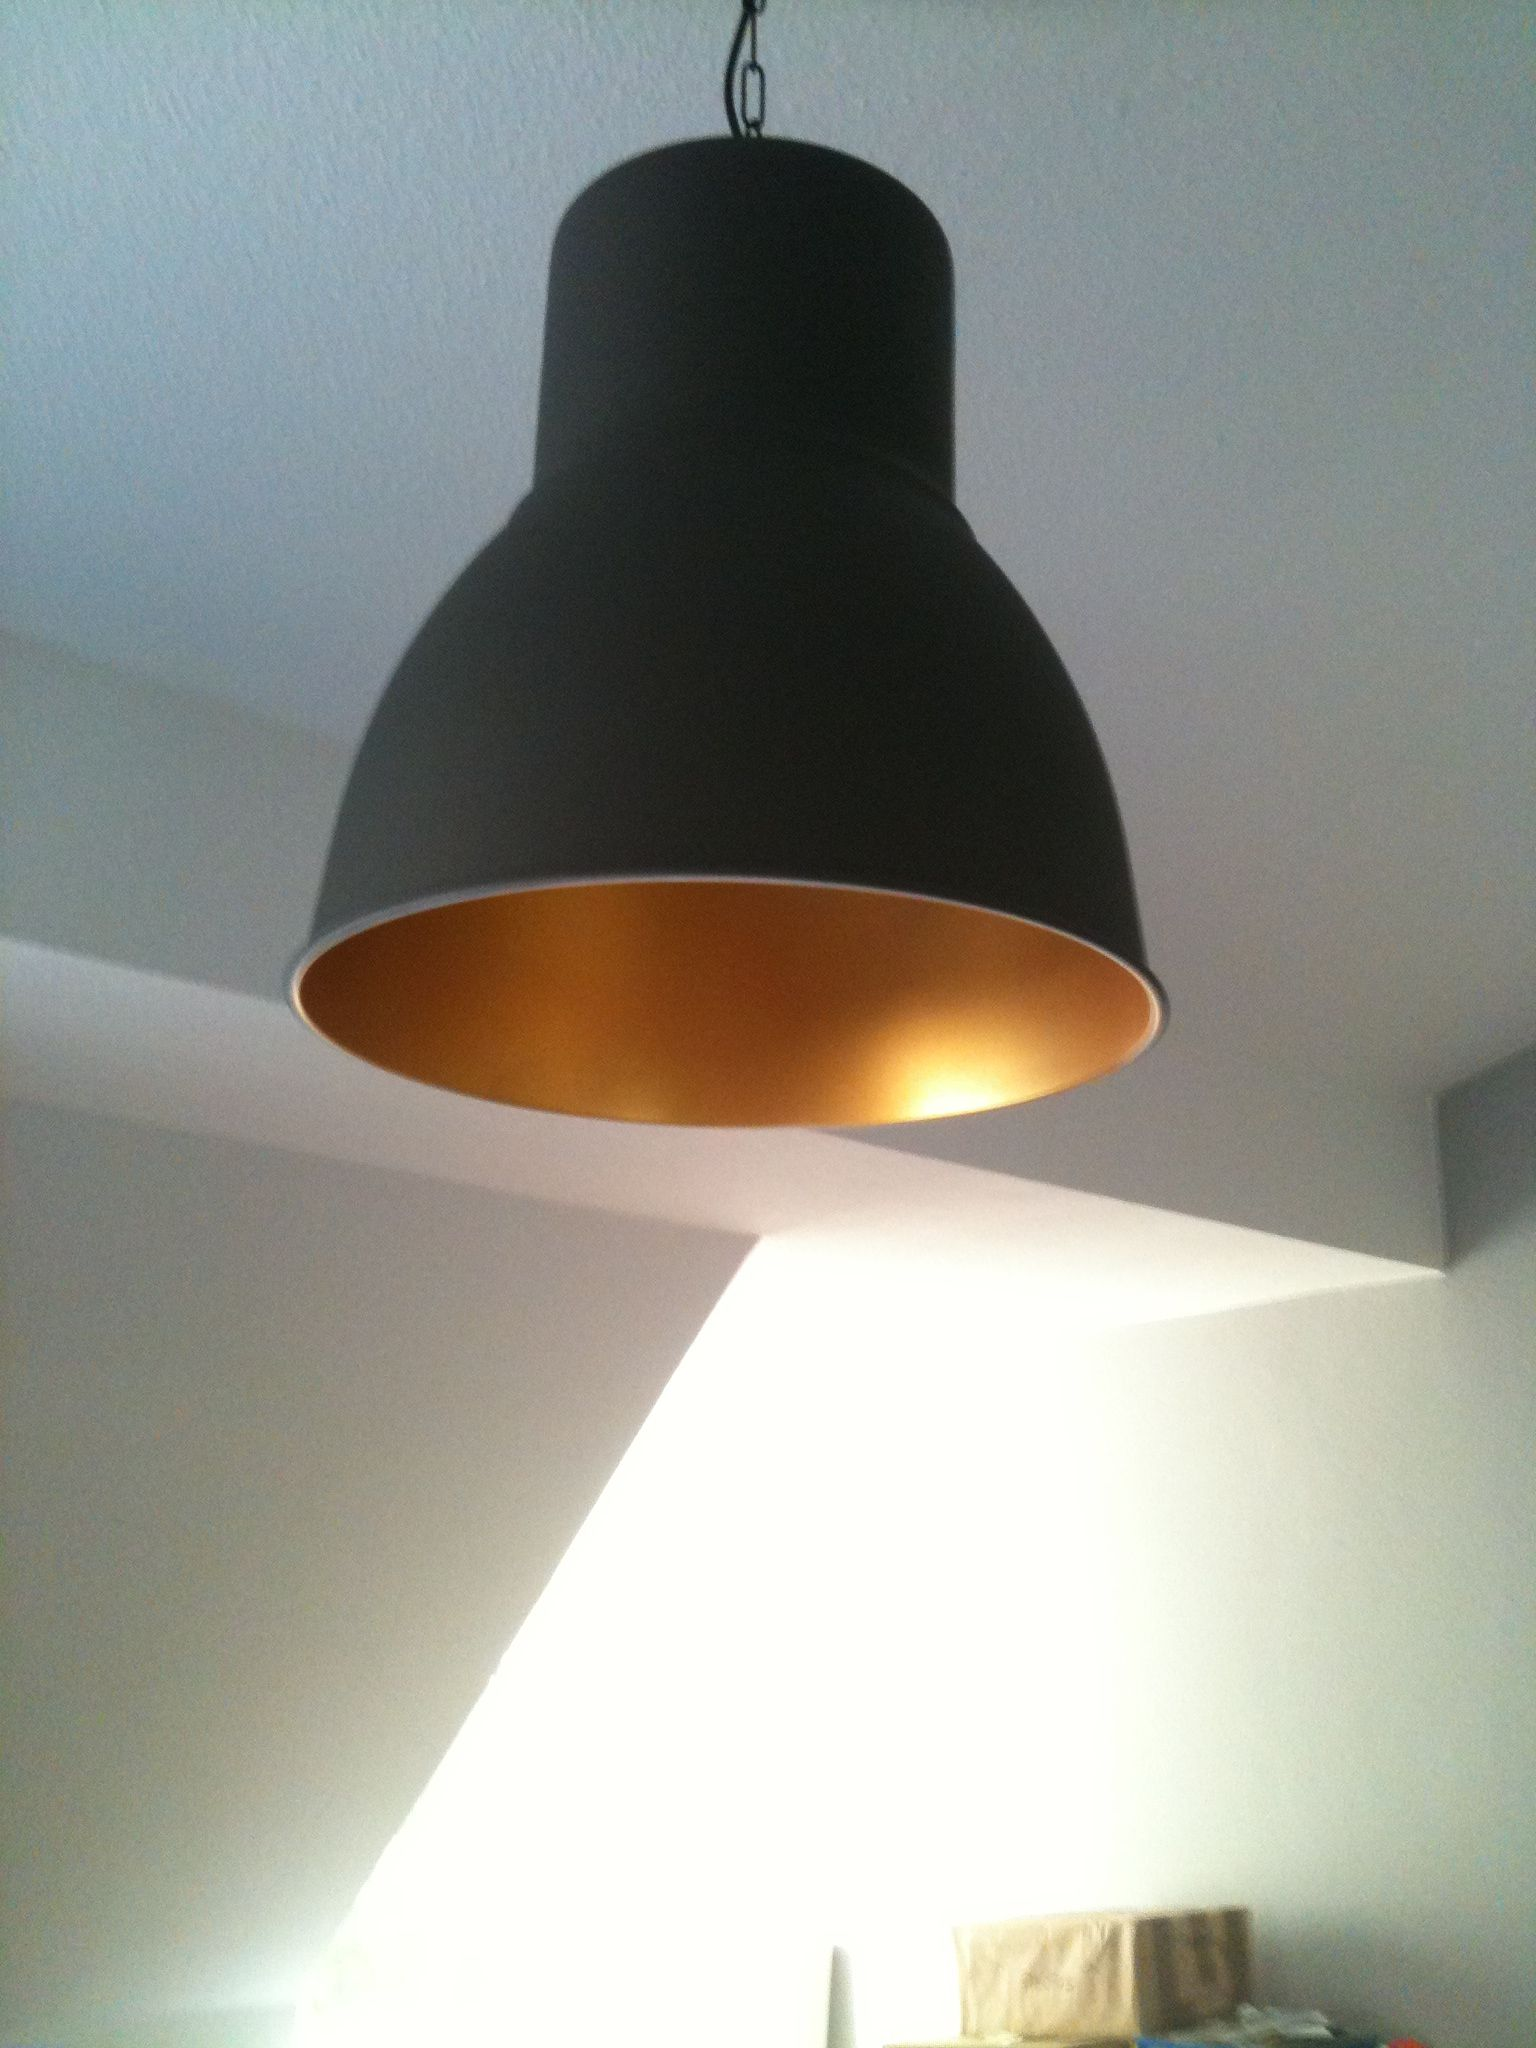 Küchenlampen Decke Ikea Ikea Hektar Pendant Interior Painted Gold Interior Design In